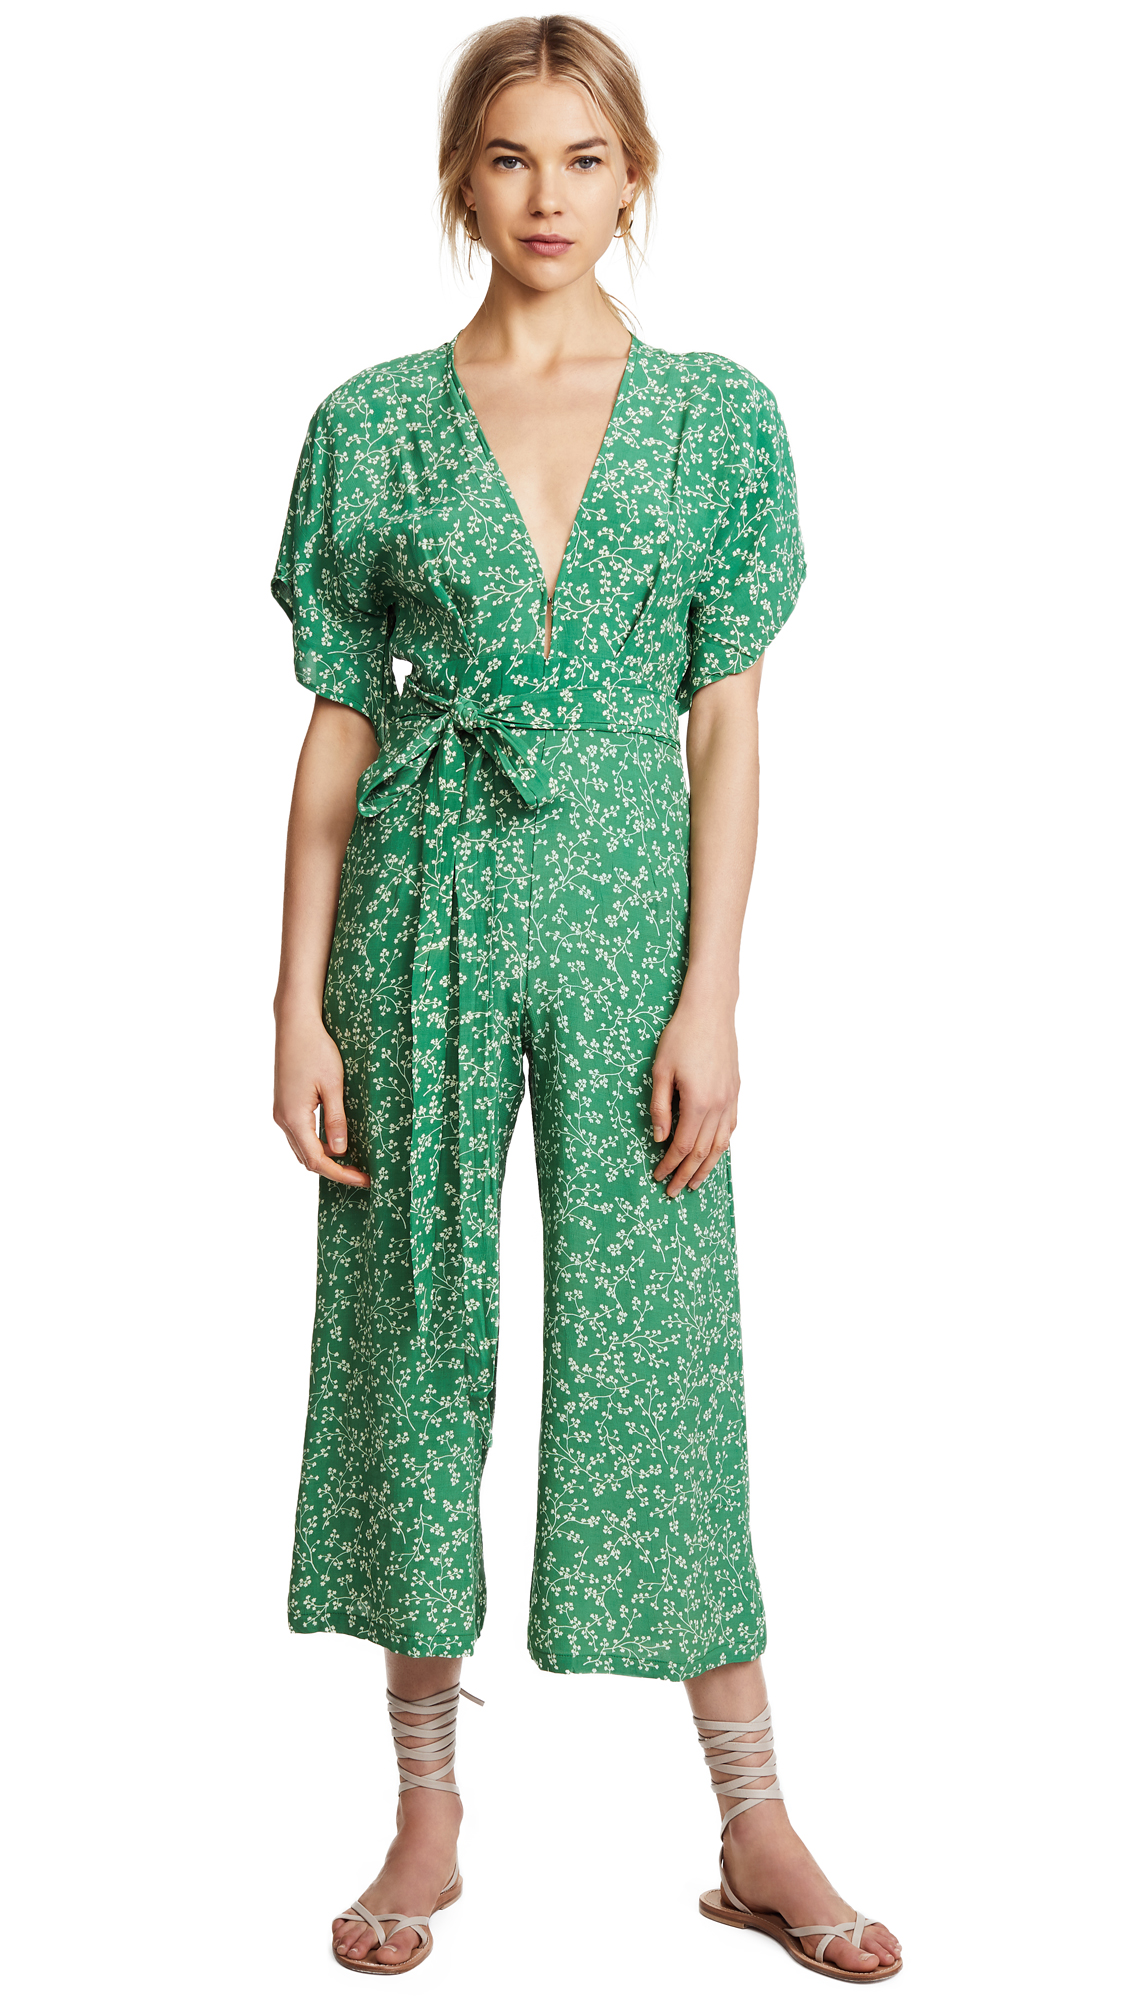 FAITHFULL THE BRAND Cedric Jumpsuit - Violet Print/Green